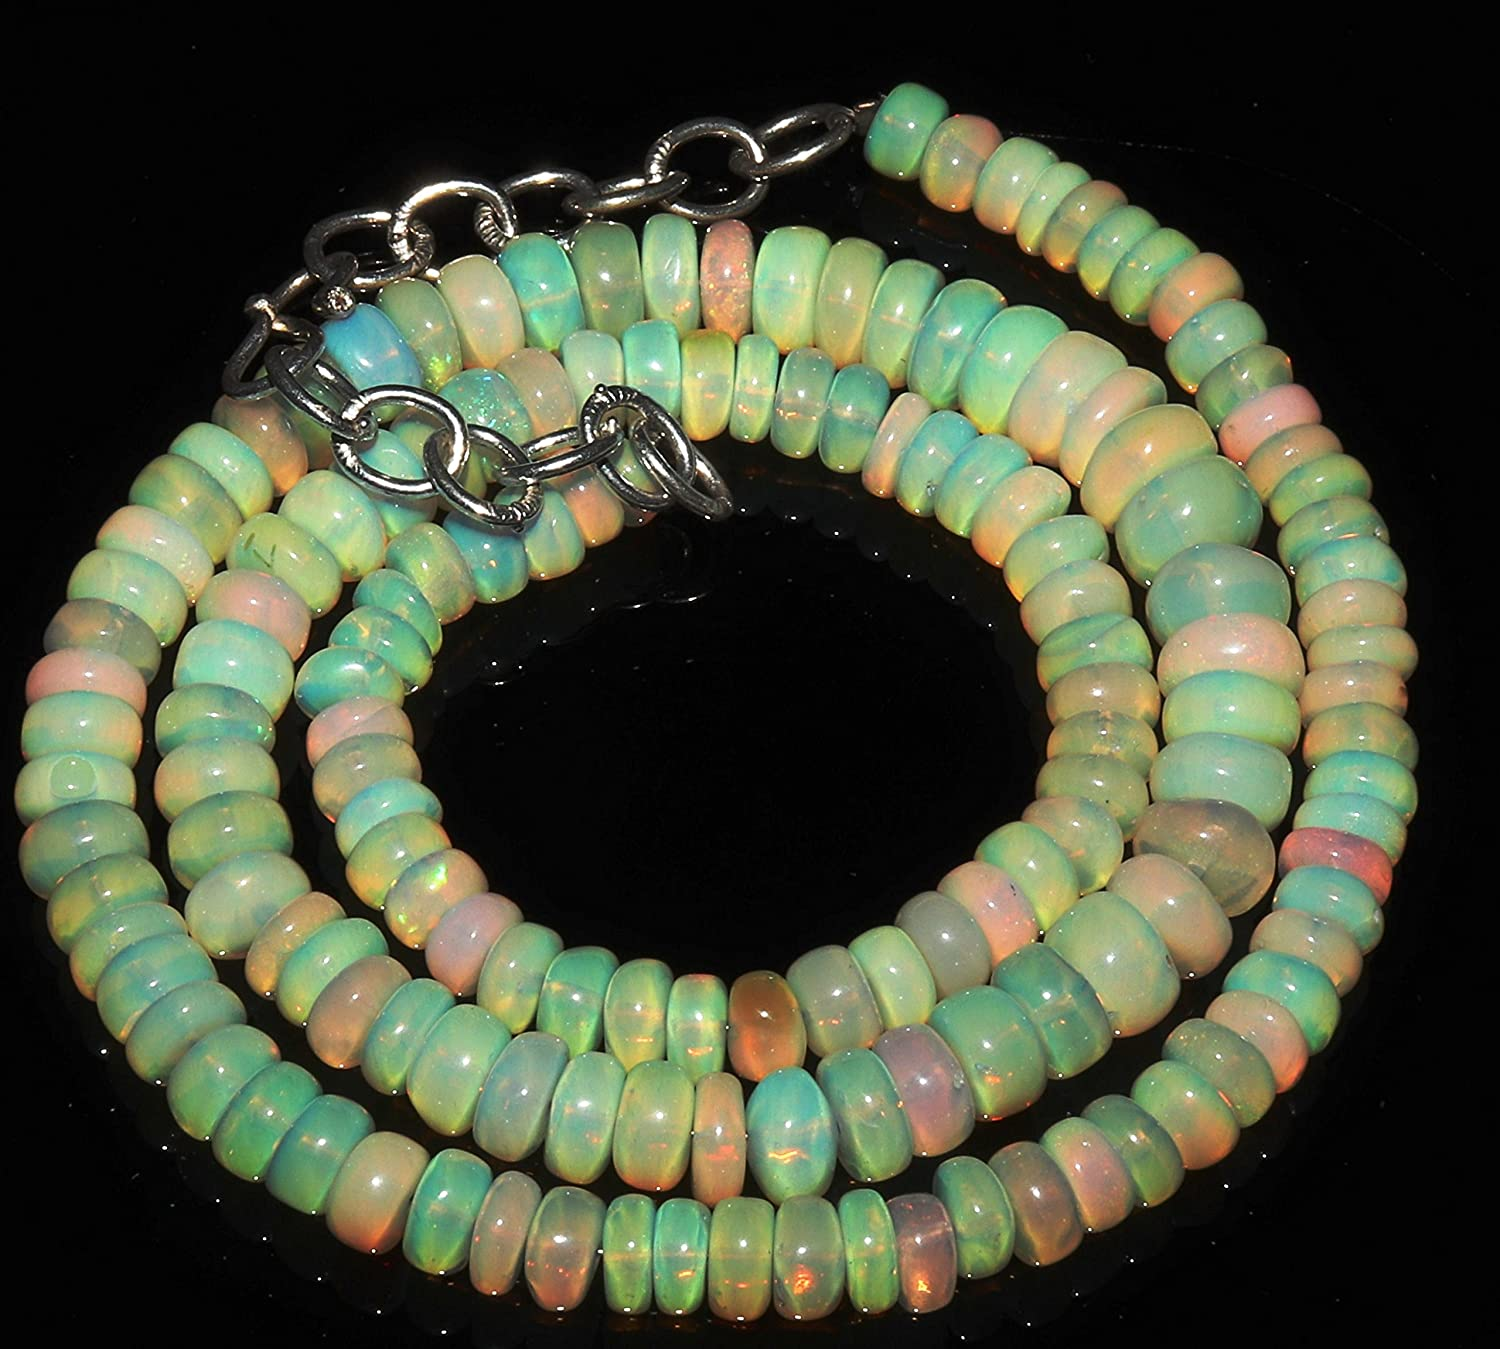 Natural Jewels Stone Handmade 80 Carat 1Necklace 5 to 7 mm 16 Roundell Beads Genuine Ethiopian Fire Opal Necklace F808